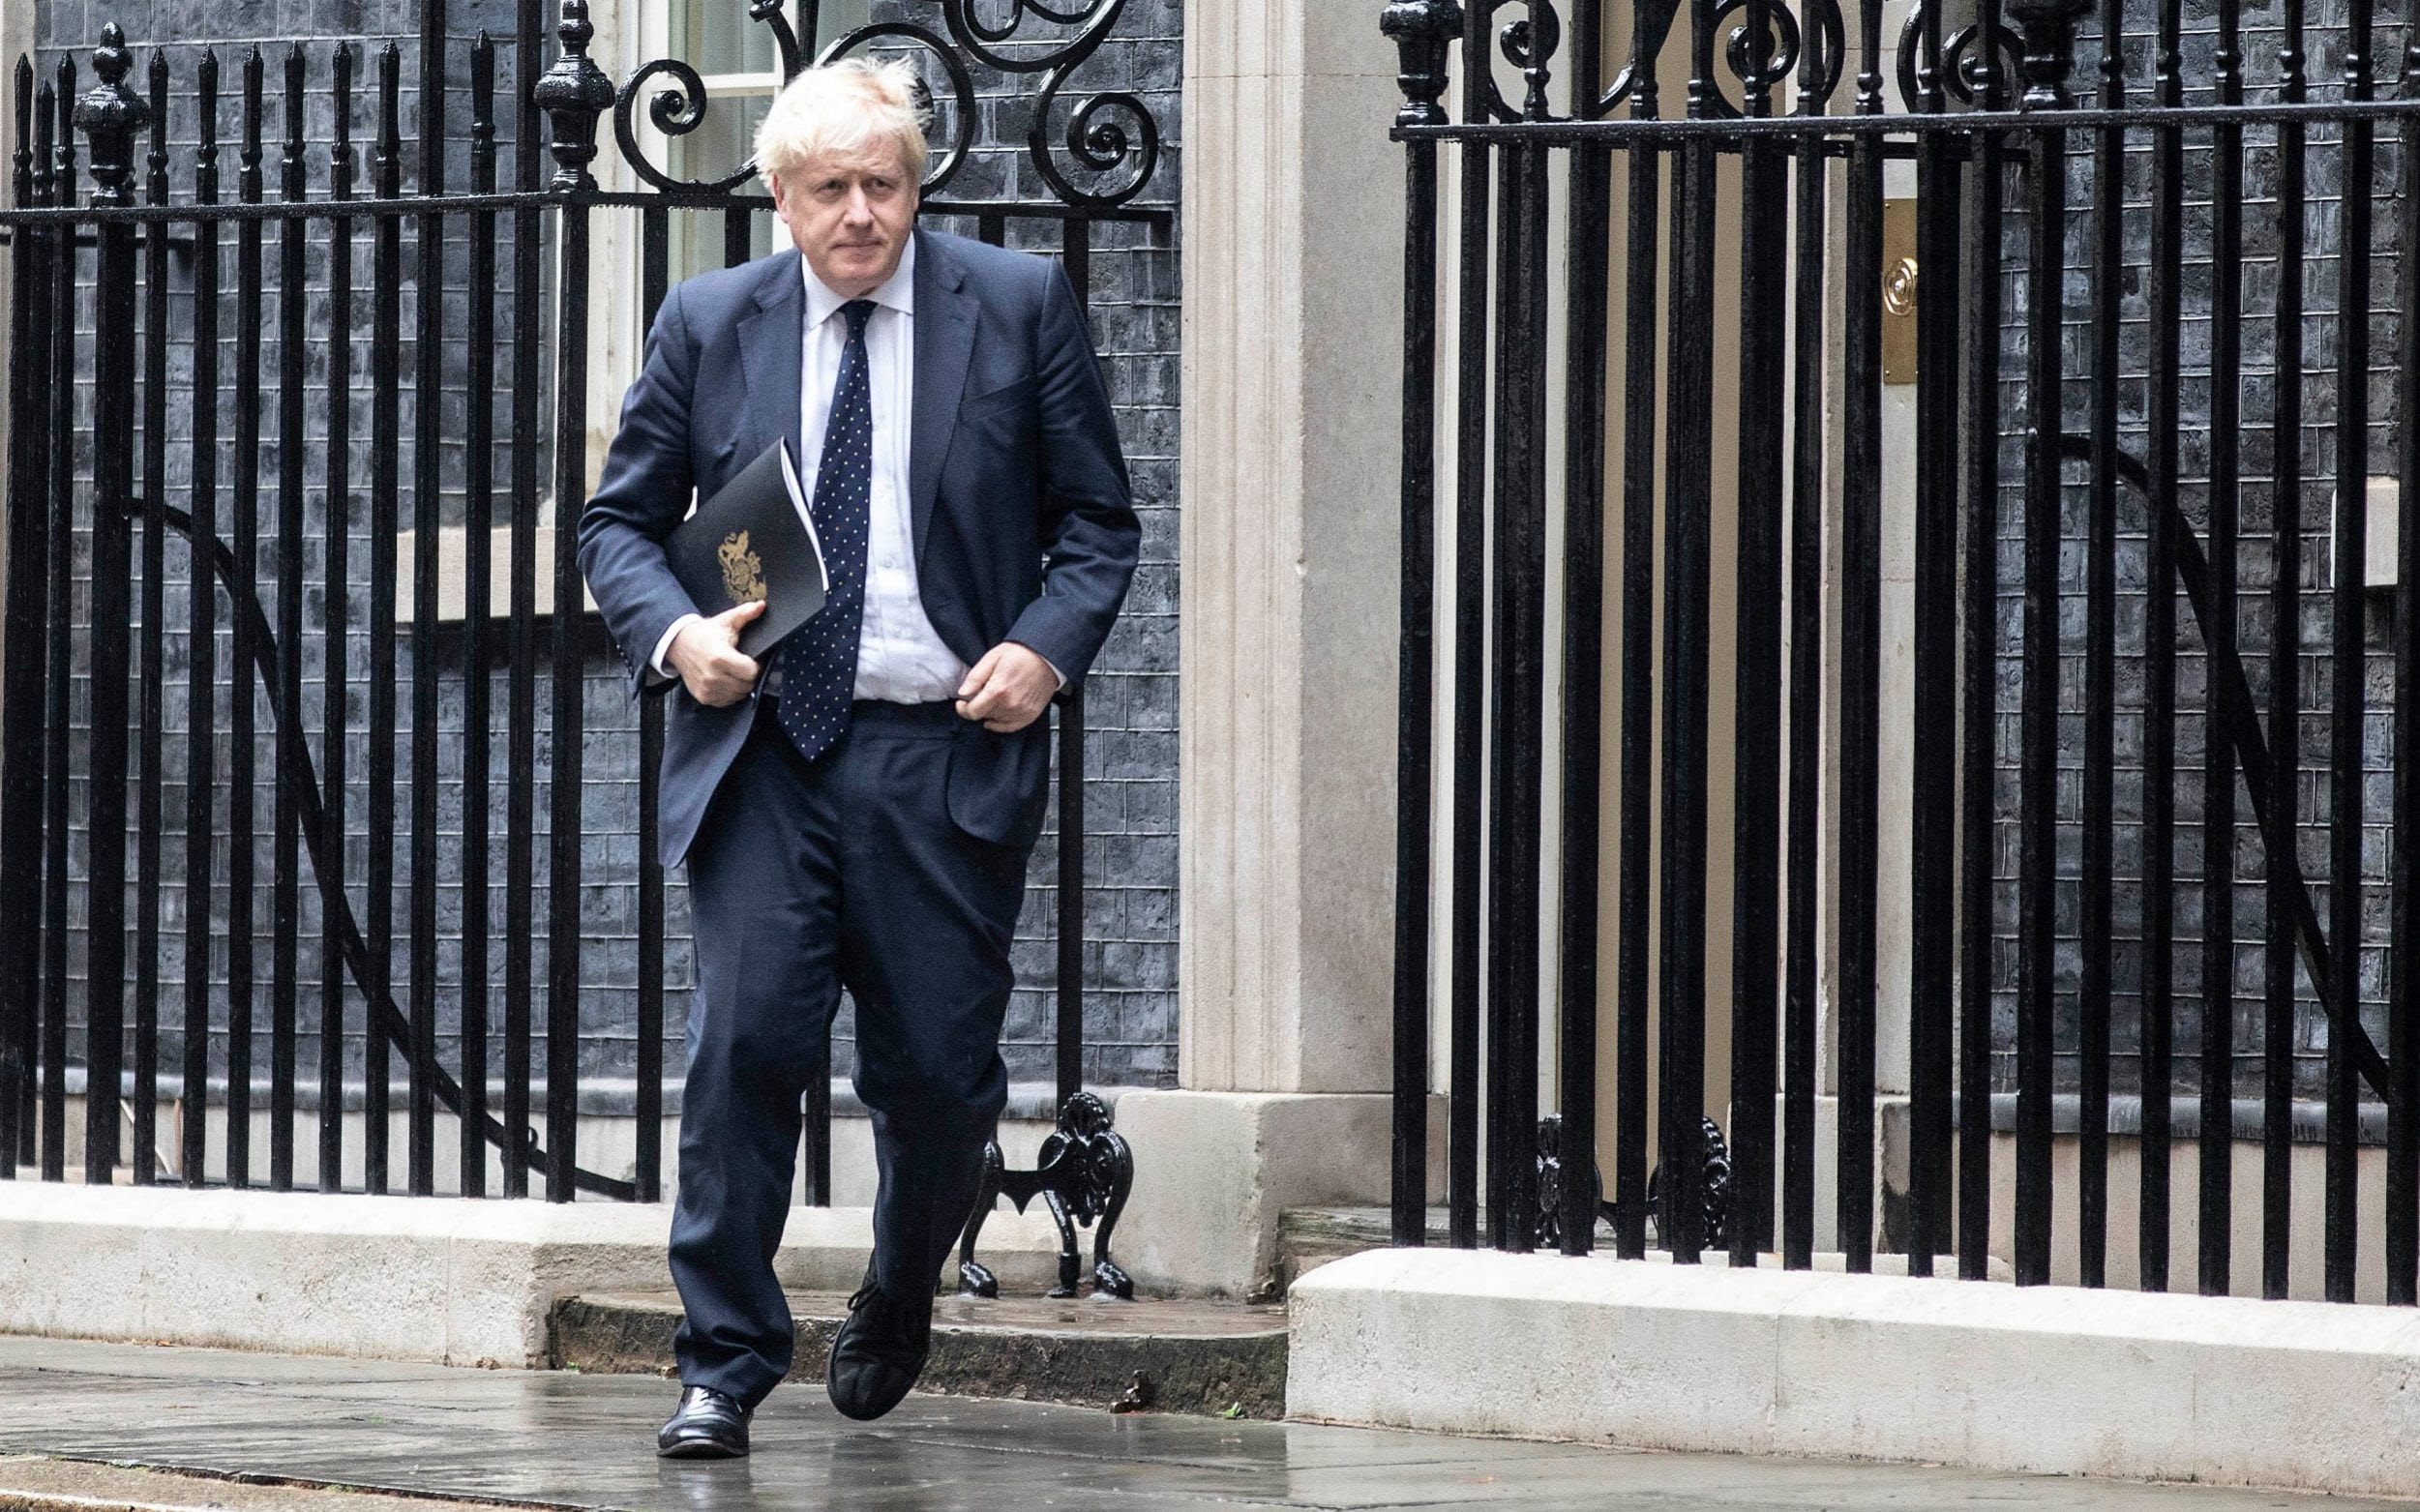 Politics latest news: Westminster braces for Cabinet reshuffle